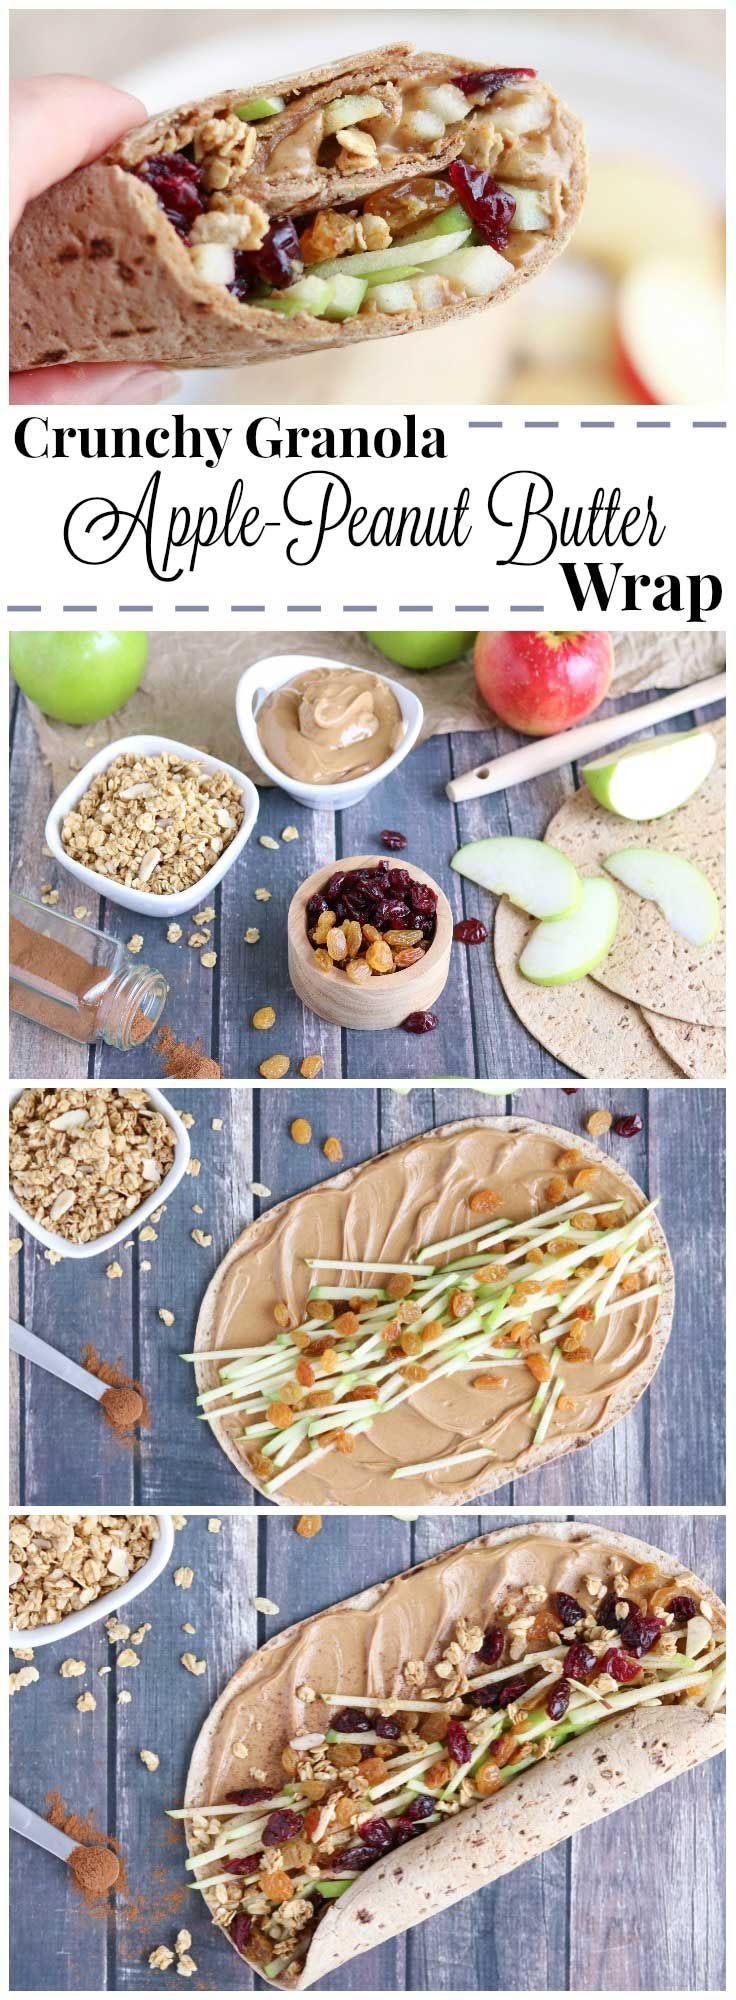 Full of protein, whole grains and fruits, this wrap recipe is fast, easy and so wonderfully adaptable! Our crunchy Peanut Butter Sandwich Wraps are perfect for on-the-go meals and make-ahead lunches (you can even go nut-free for school lunches)! Change up